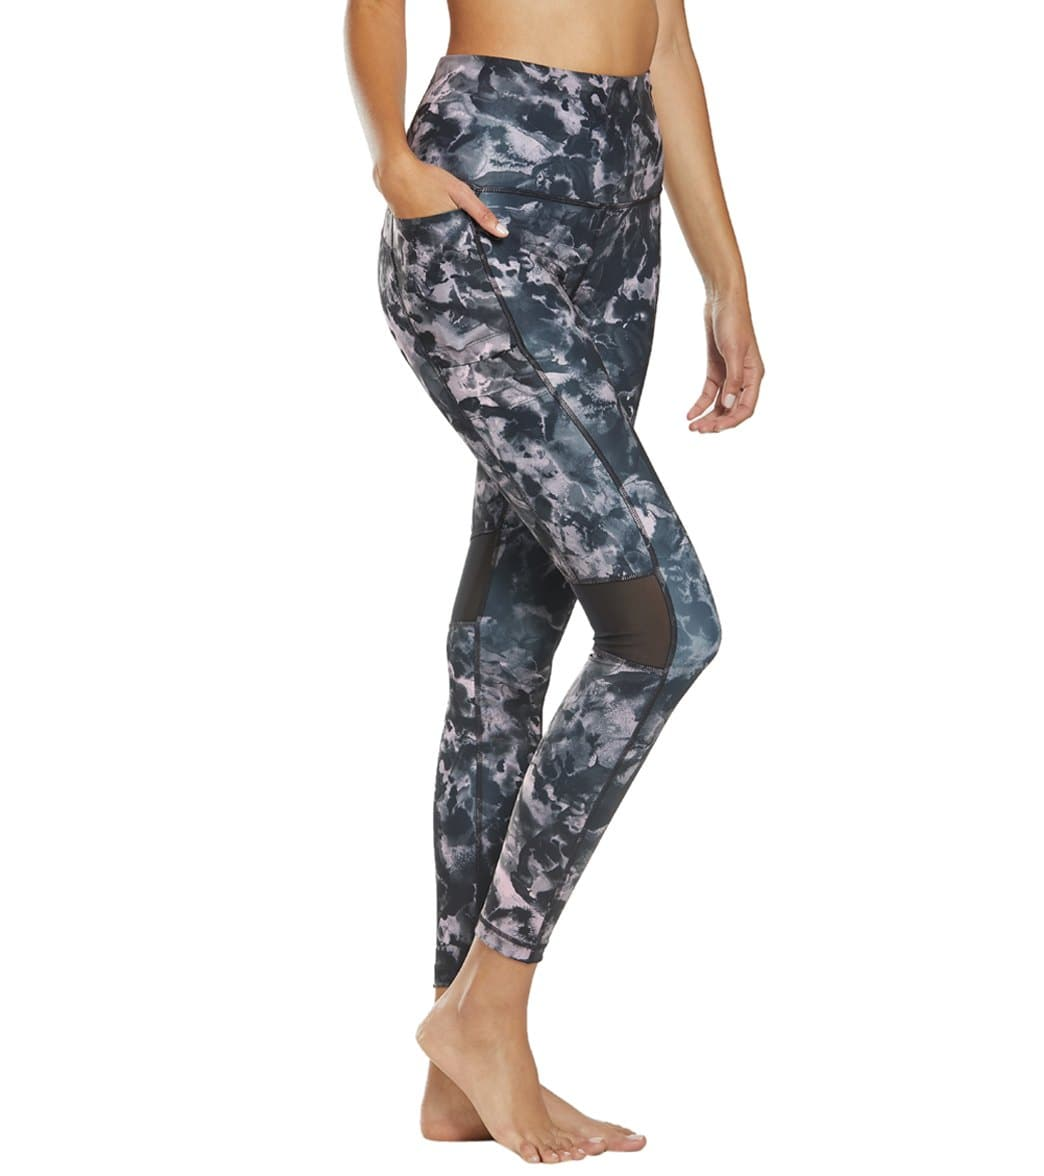 8b50bc3796f Lole Women s Burst High Waist Ankle Leggings at SwimOutlet.com - Free  Shipping